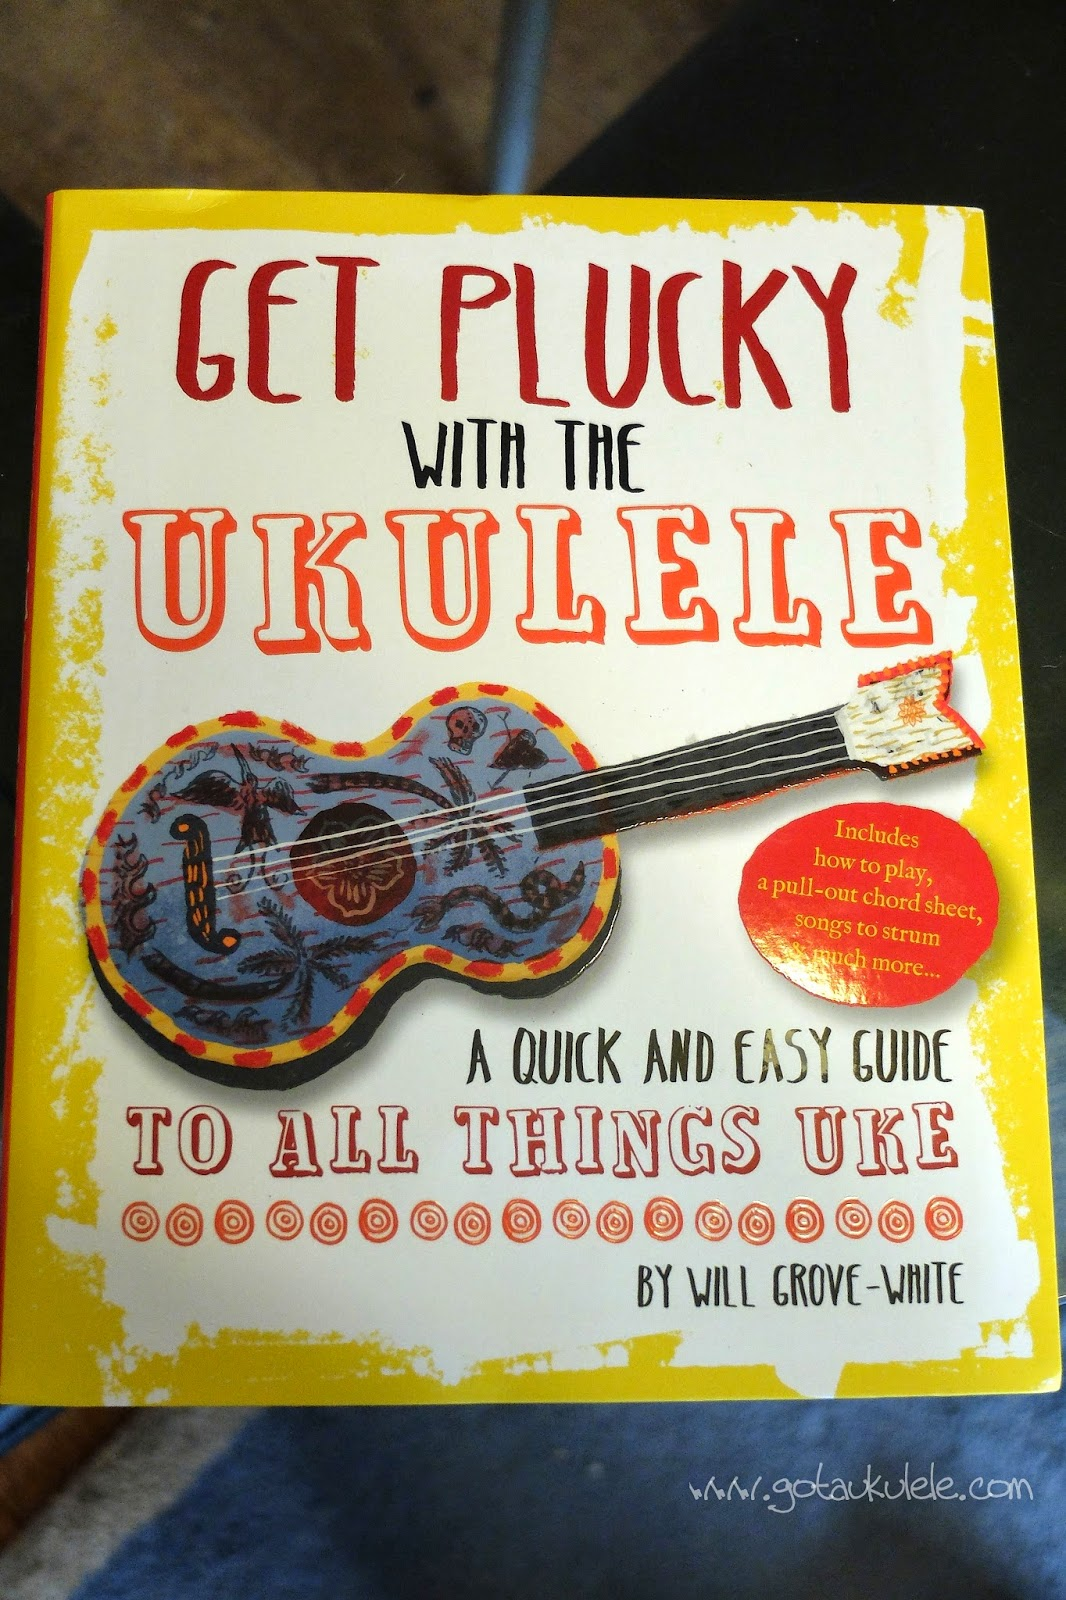 Get Plucky With The Ukulele by Will Grove-White - REVIEW